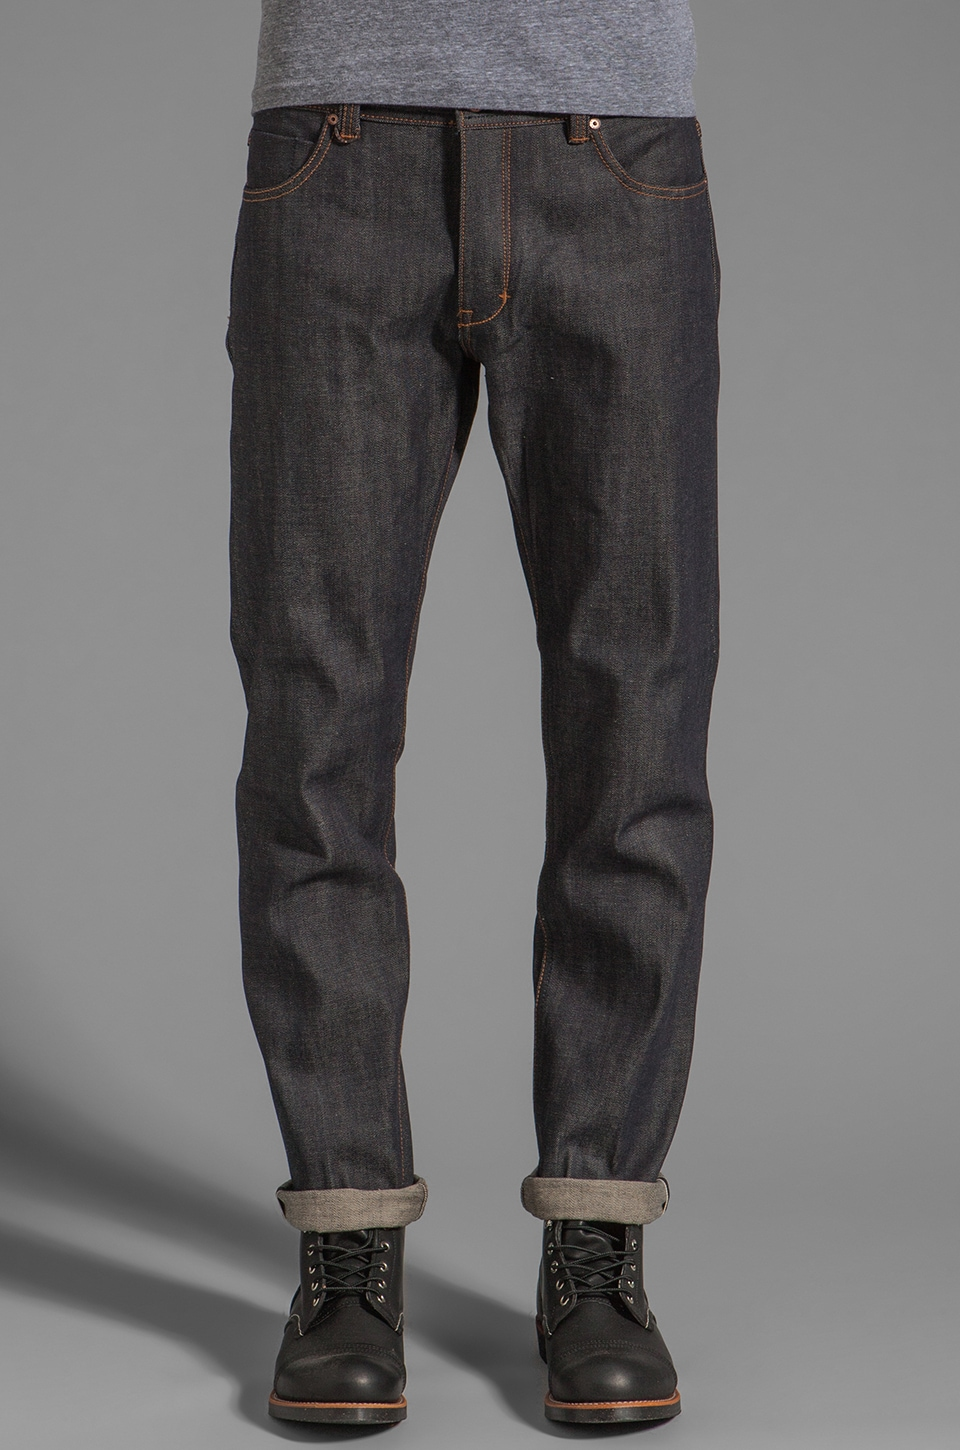 NEUW Johnny Tapered Jeans in Raw Selvedge